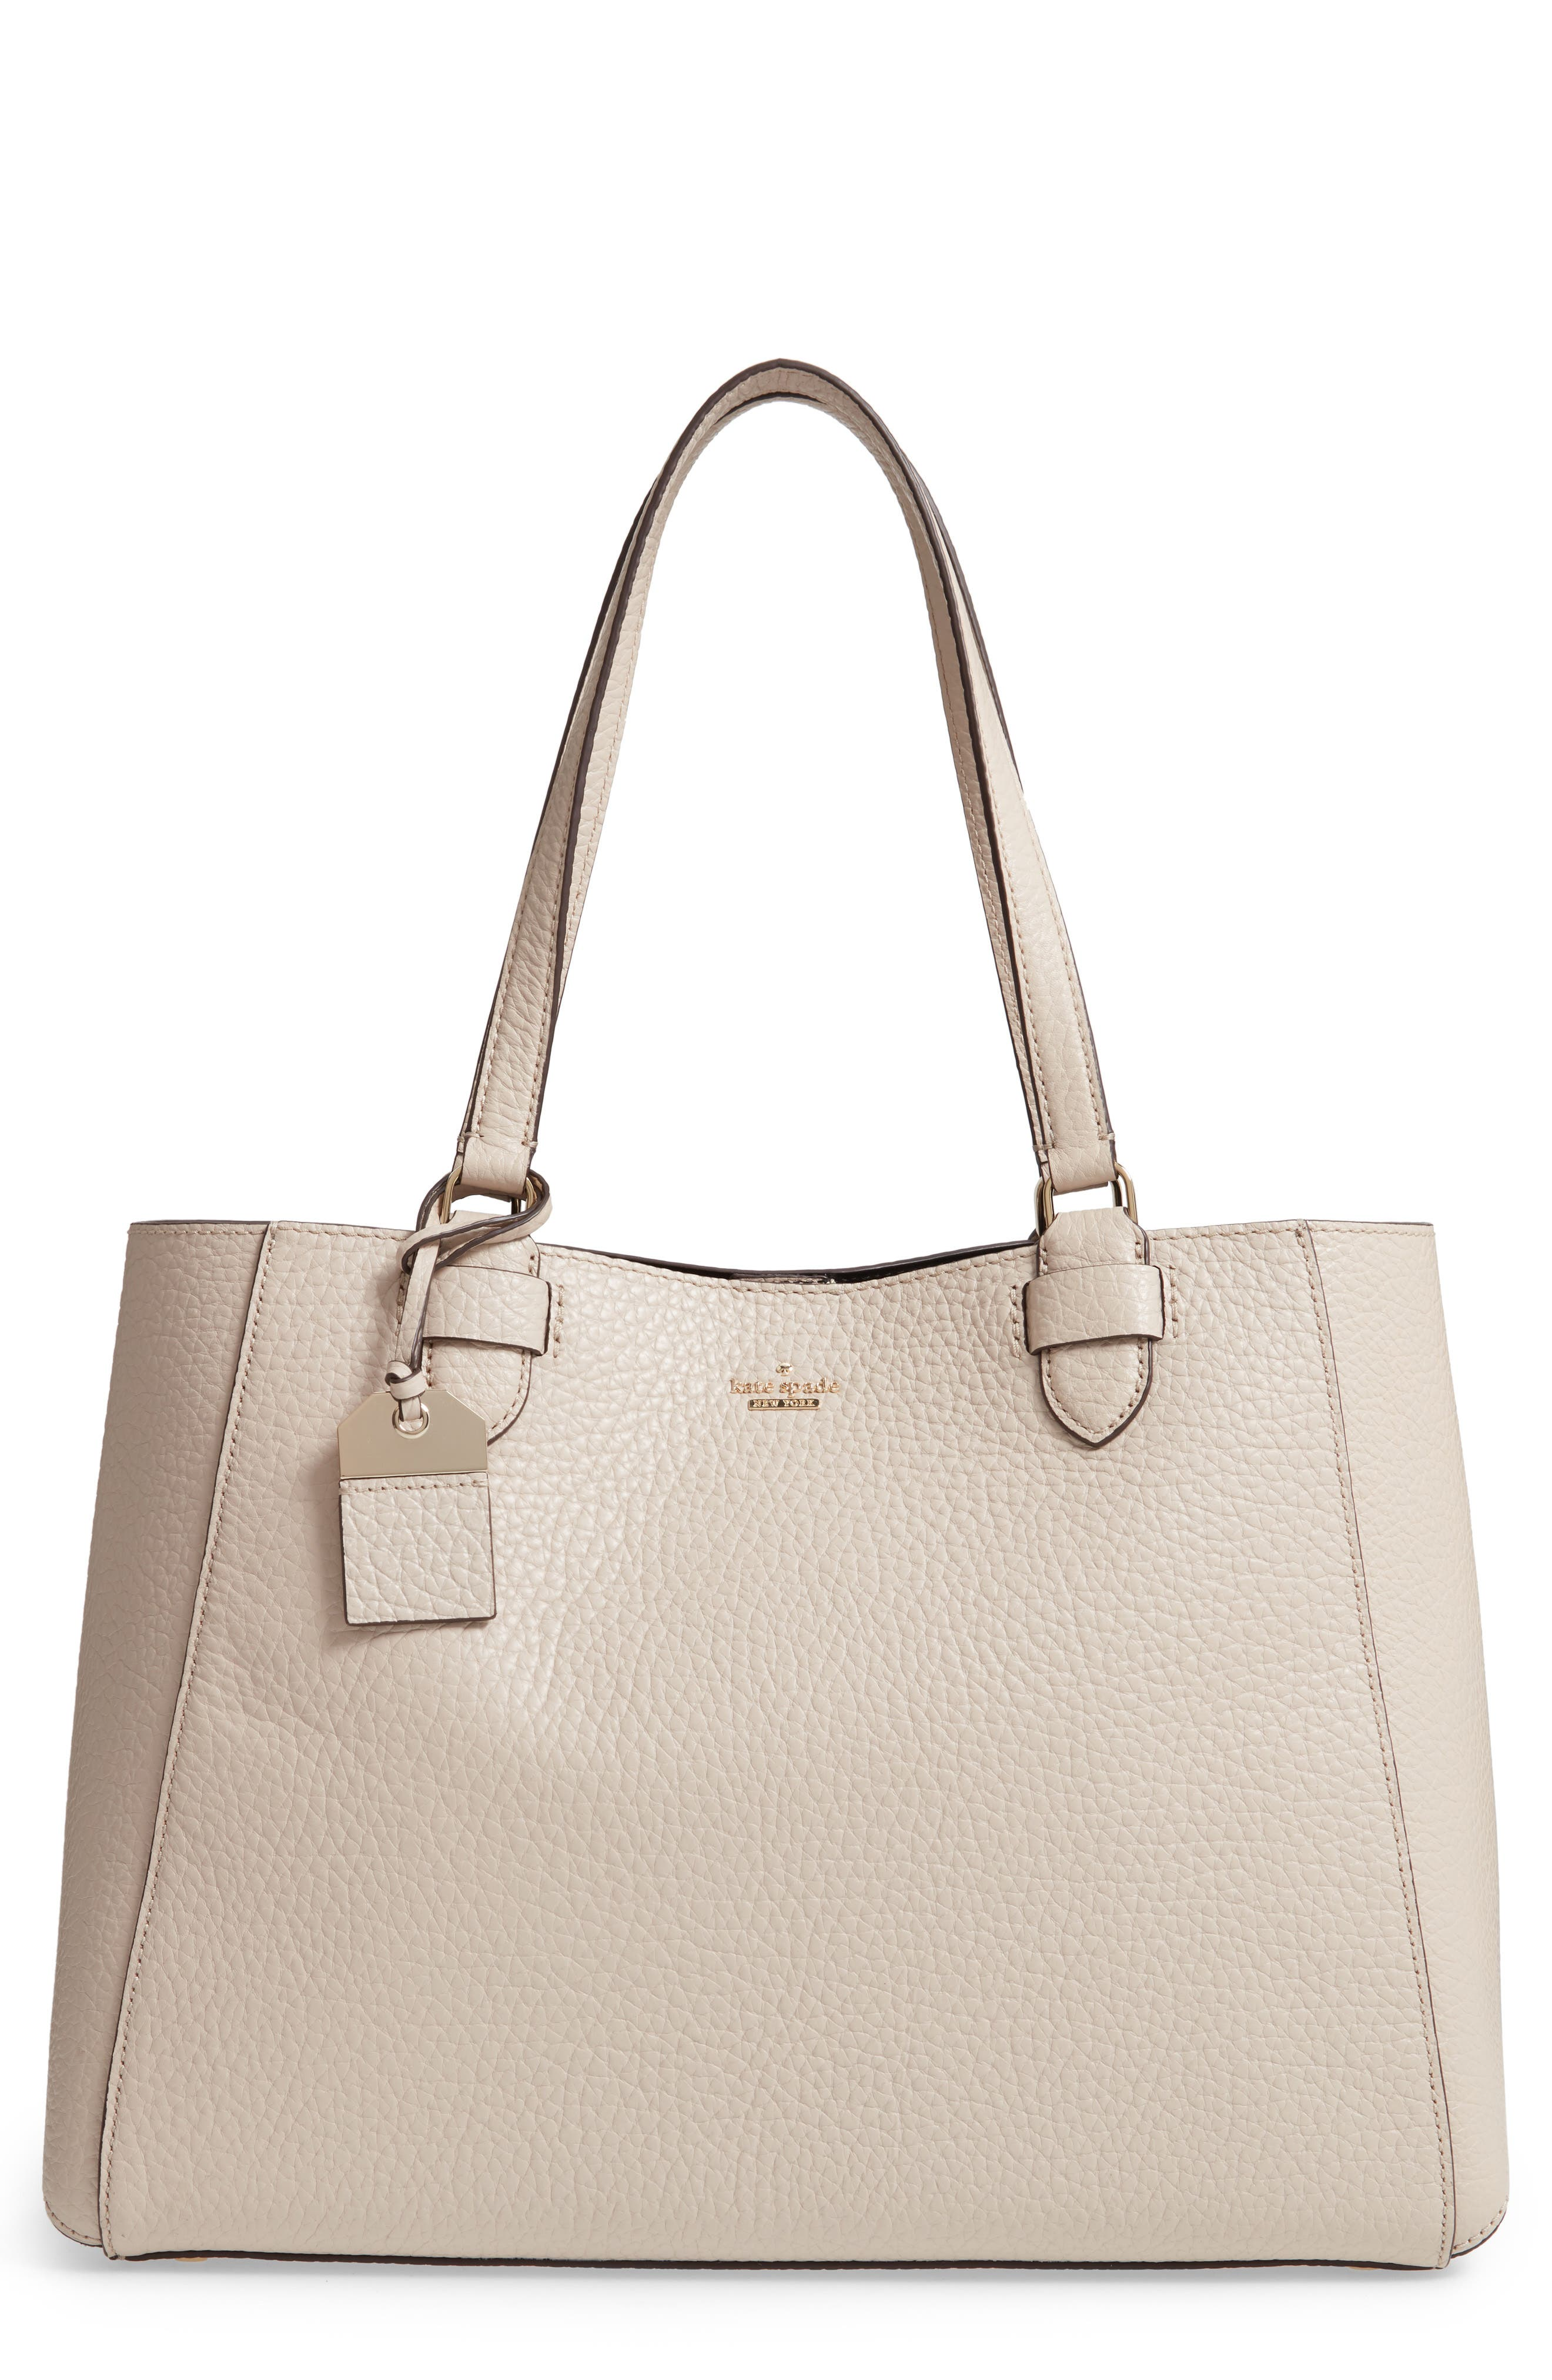 carter street - tyler leather tote,                             Main thumbnail 3, color,